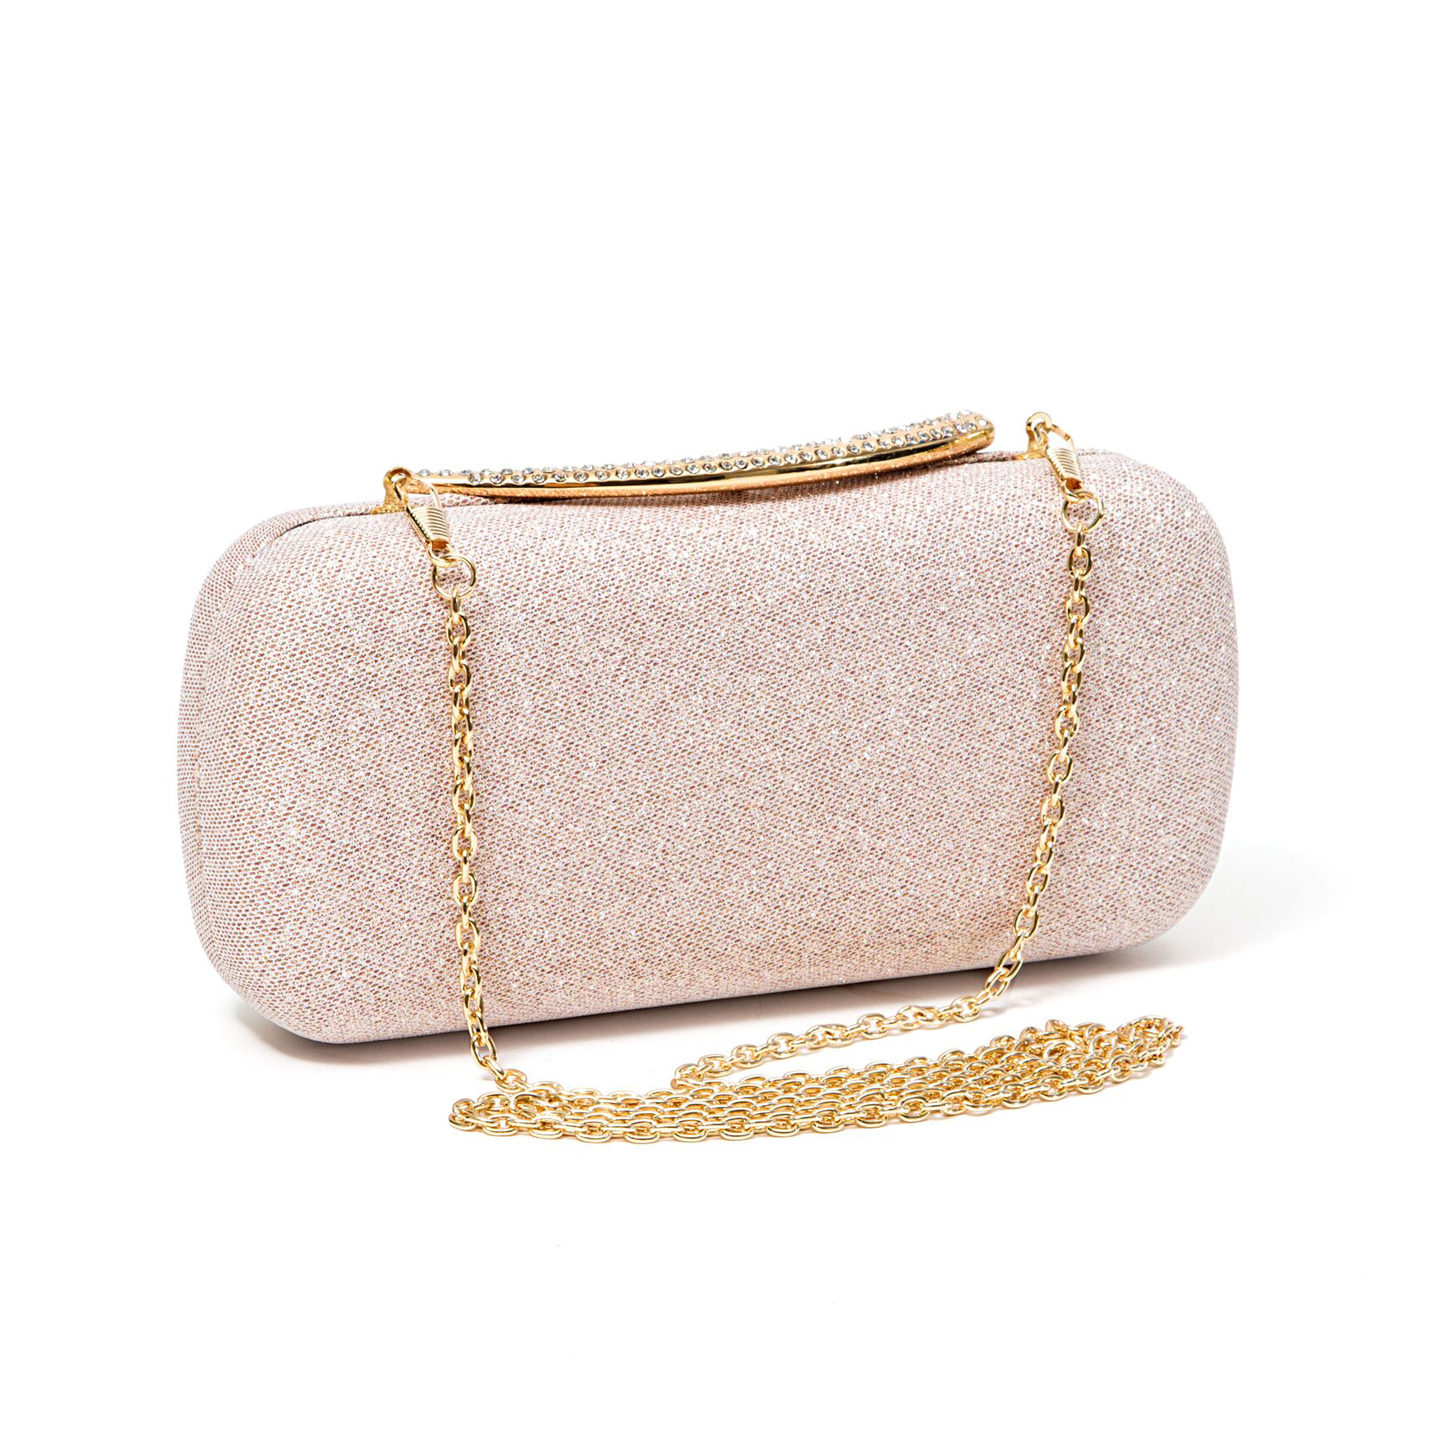 LADY COUTURE BROOKE BAG CHAMPAGNE